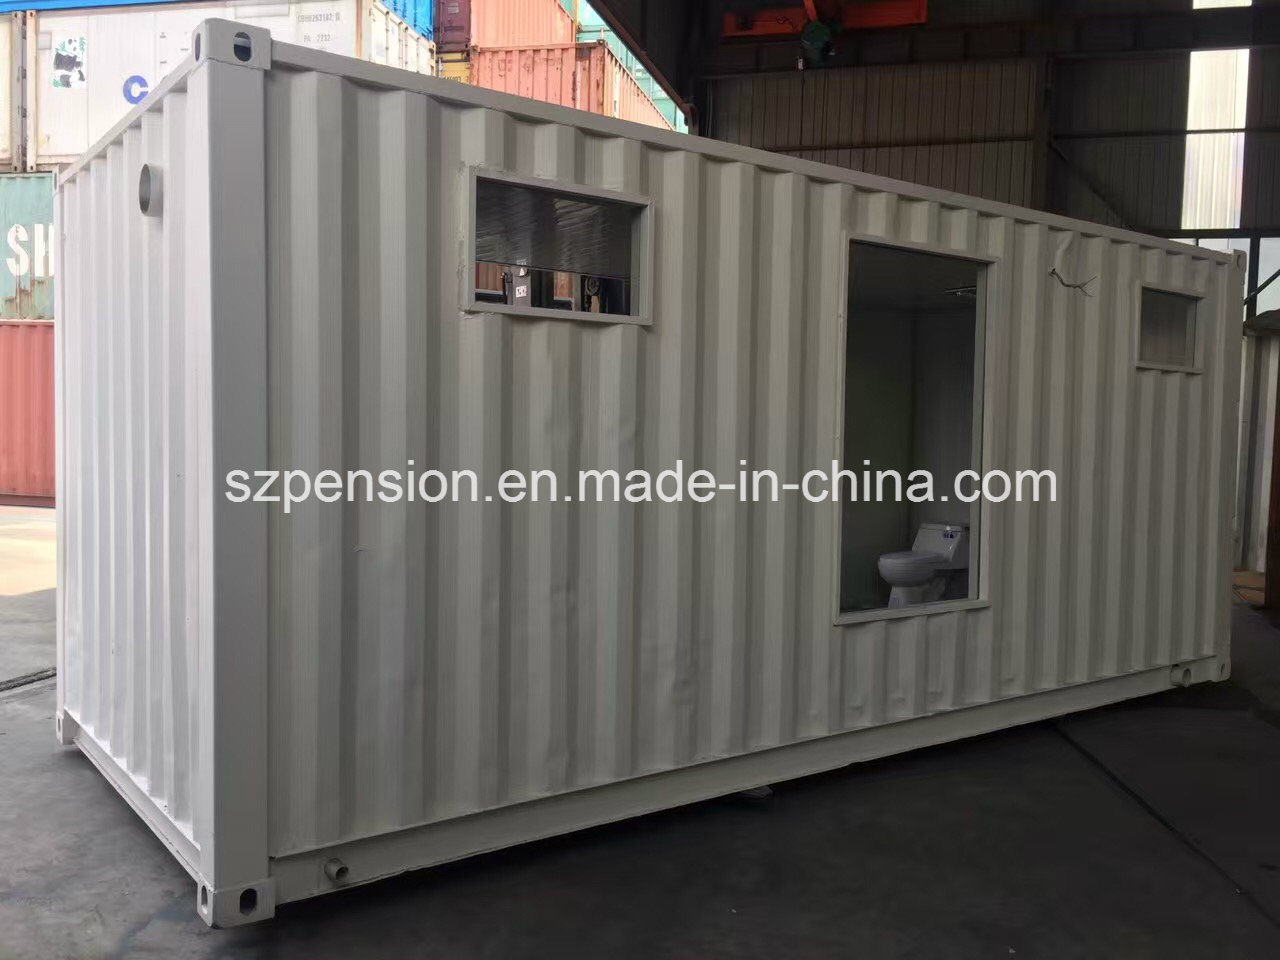 Well Designed Modern Modified Container Prefabricated/Prefab Sunshine Room/House